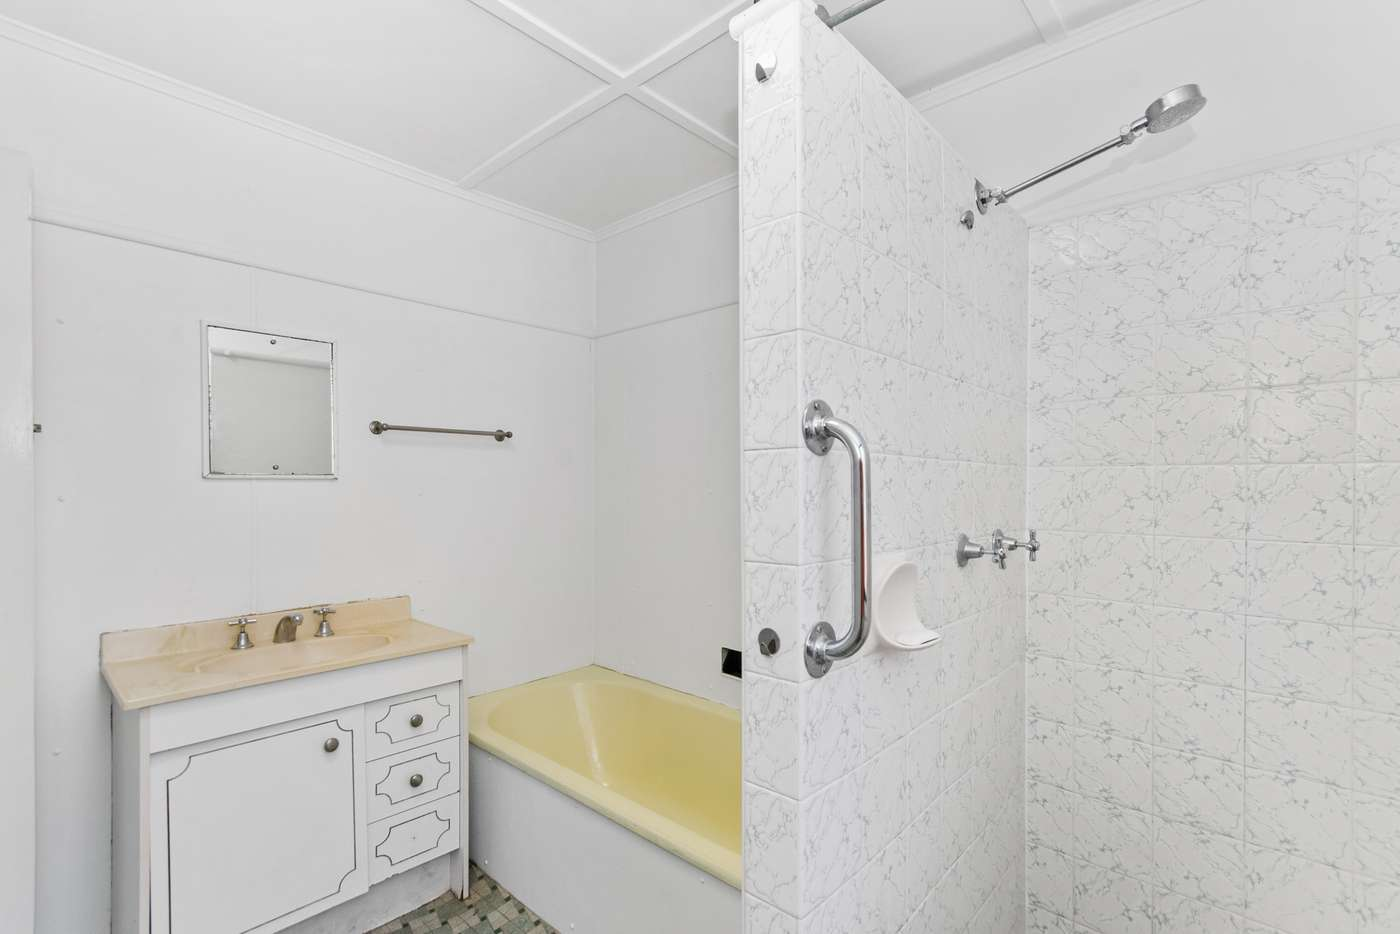 Seventh view of Homely house listing, 302 Stanley Street, North Ward QLD 4810